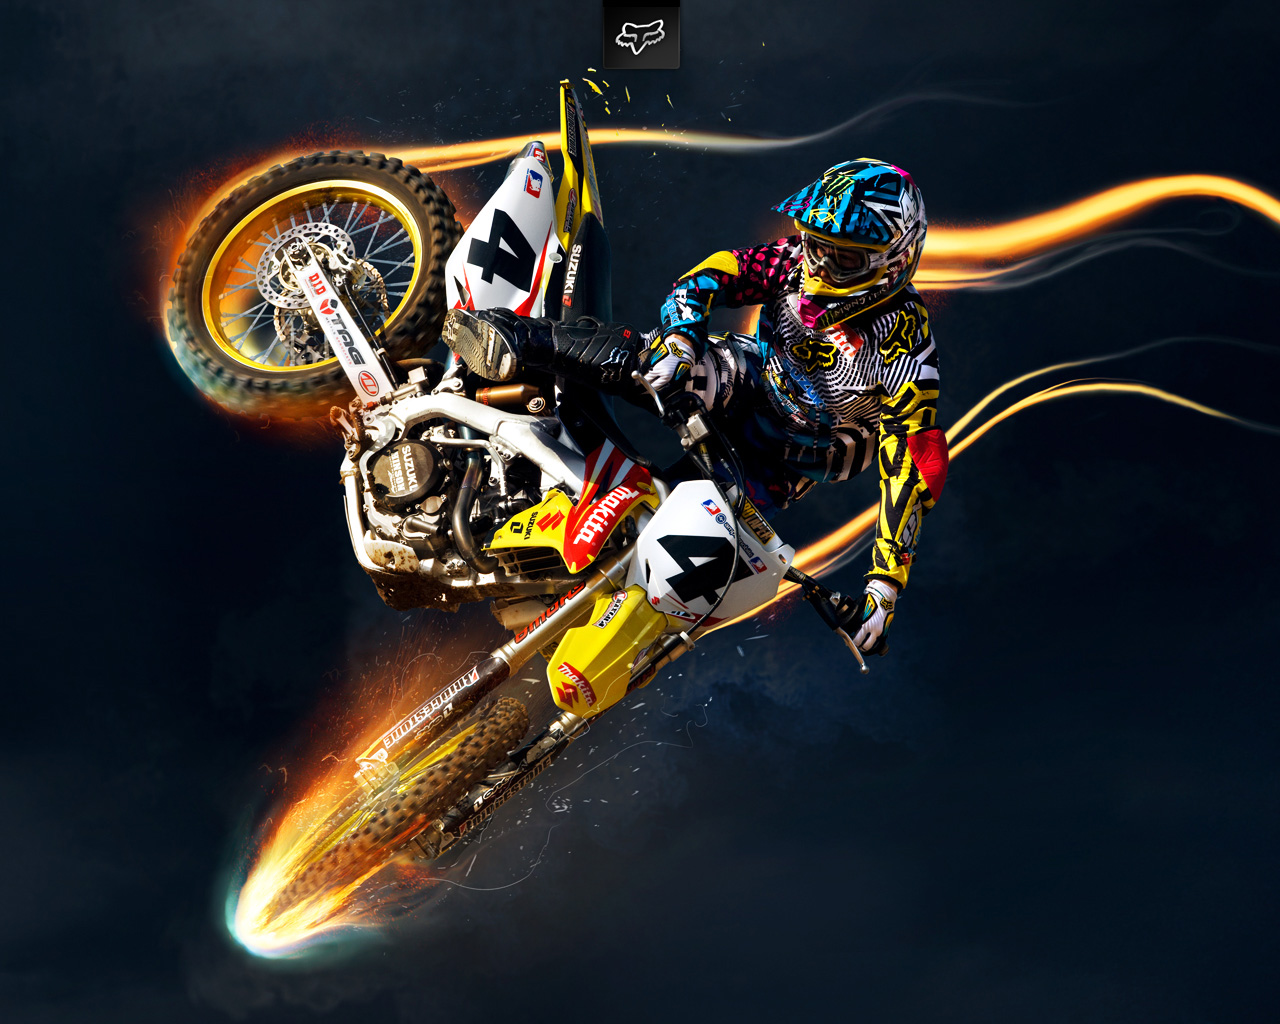 43 ] Fox Wallpapers Motocross On WallpaperSafari